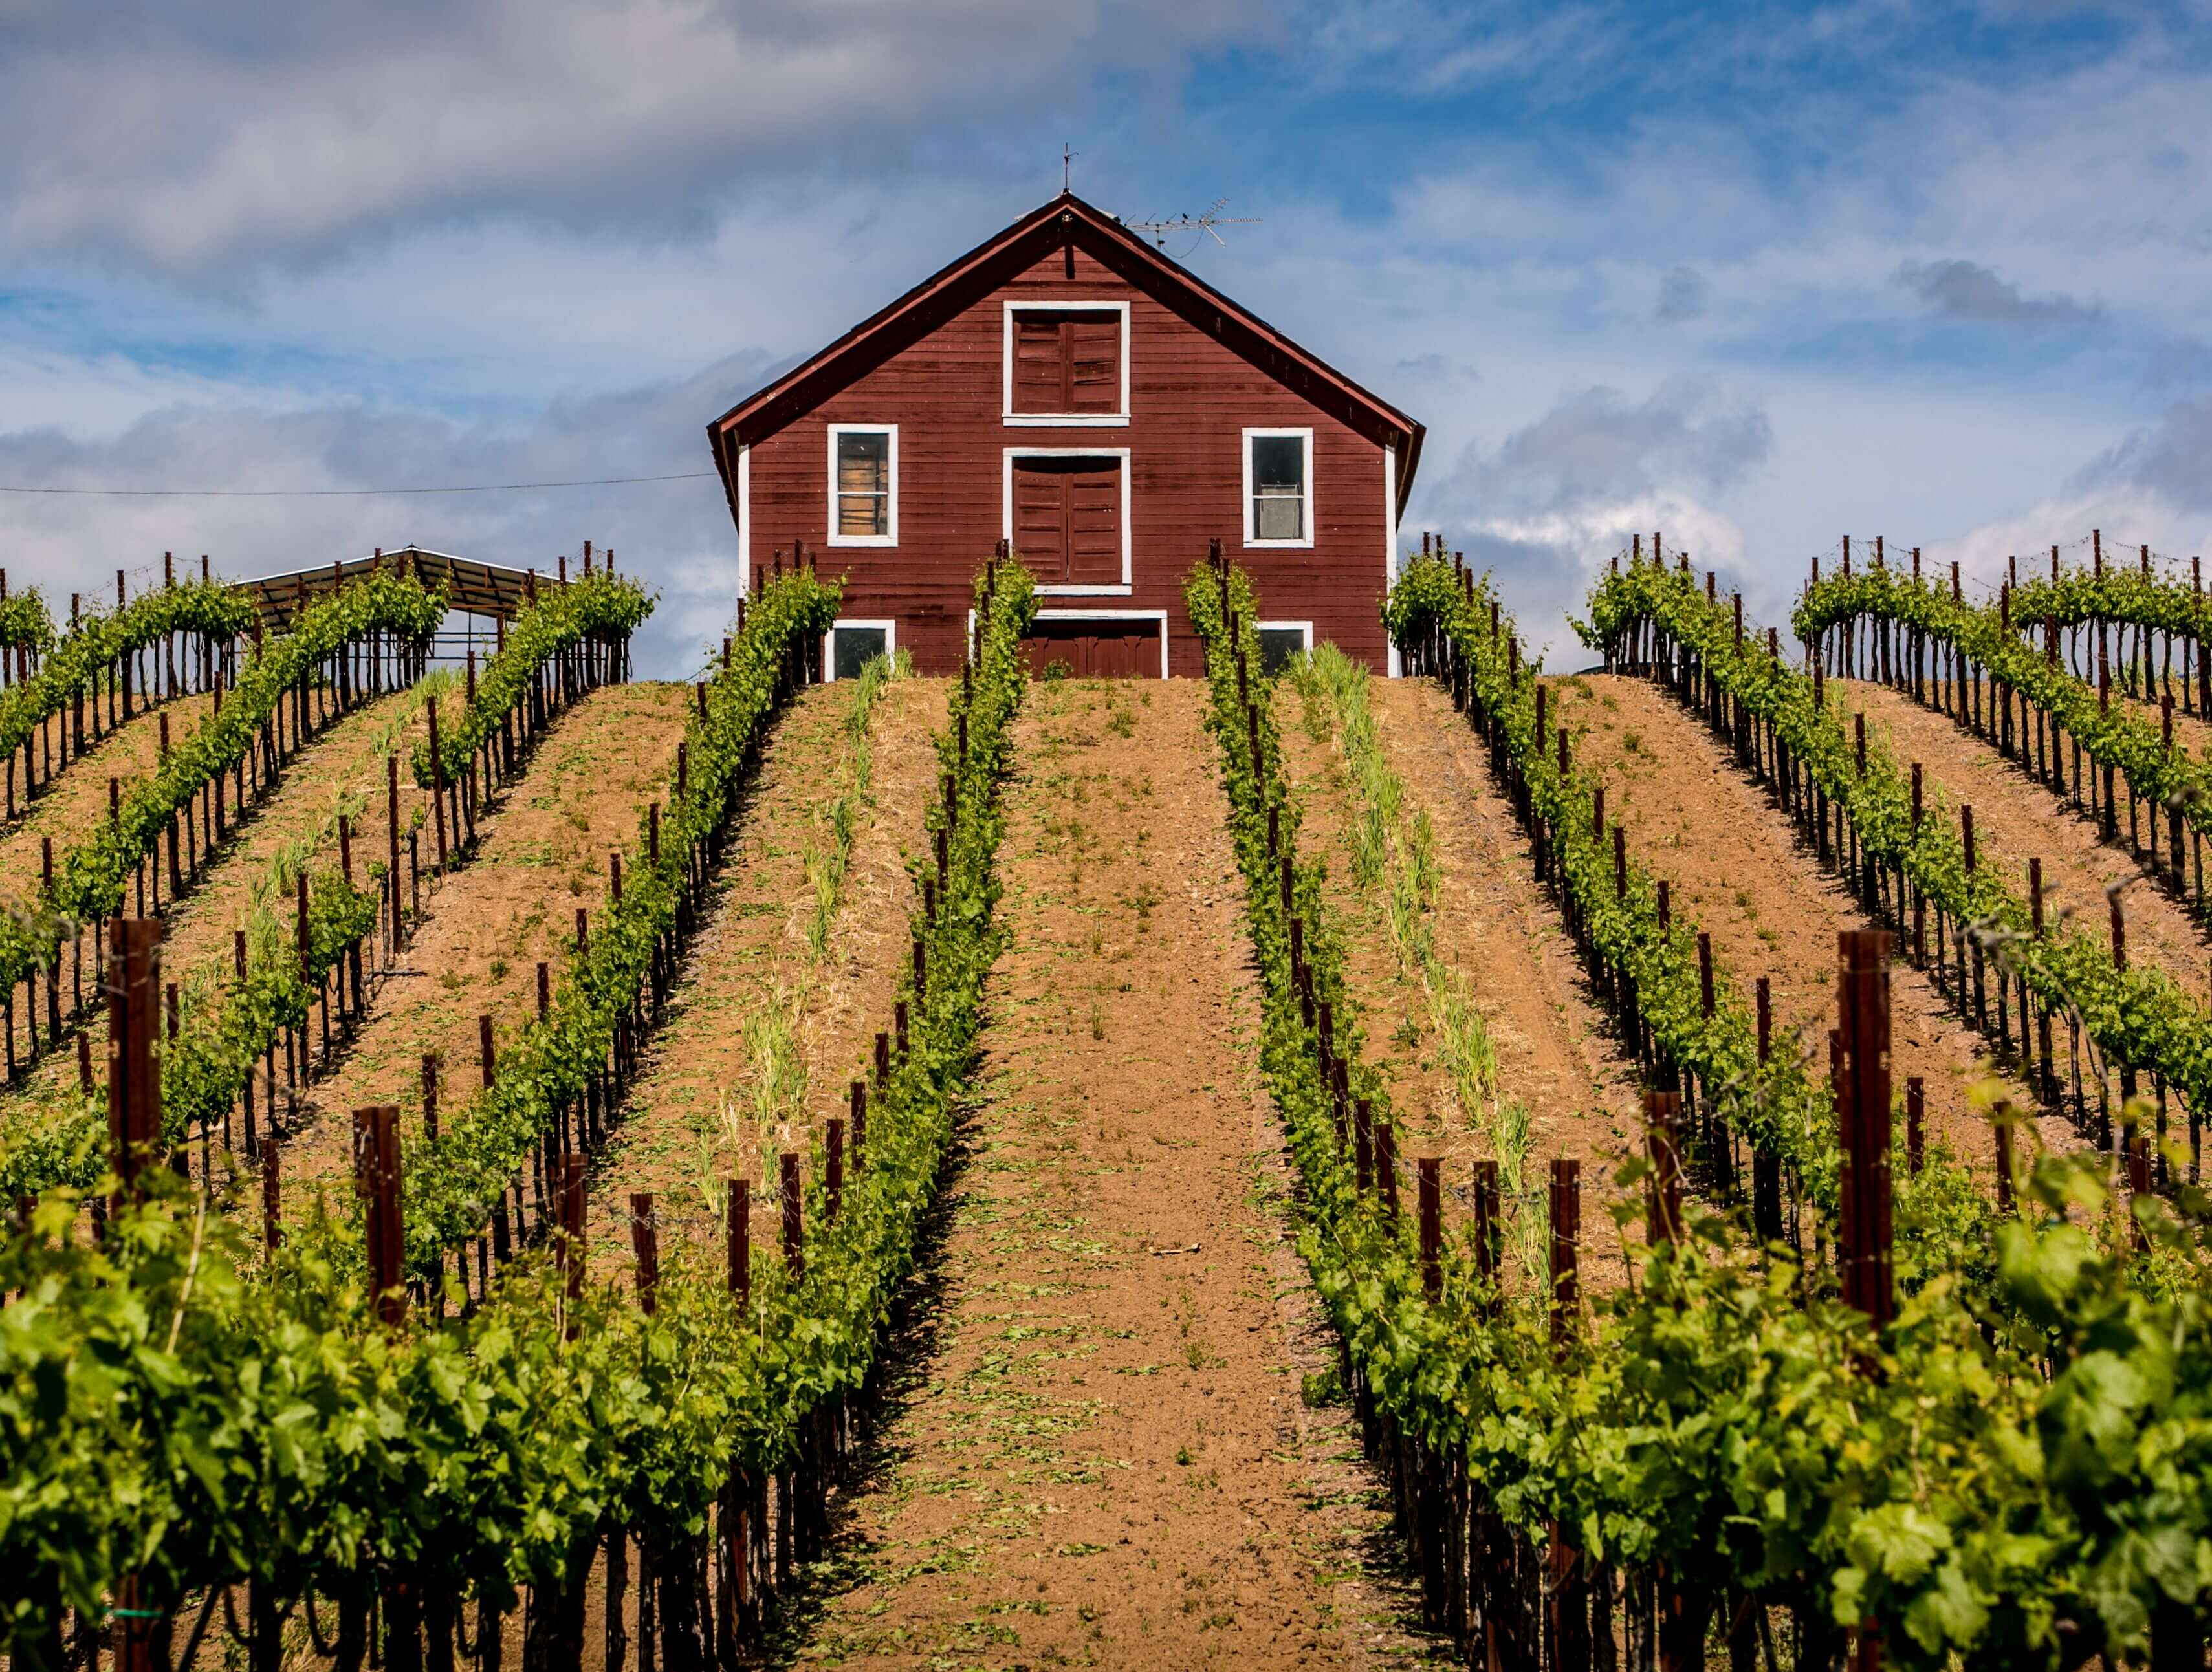 Sonoma Tourism and Kind Traveler launch sustainable tourism initiative